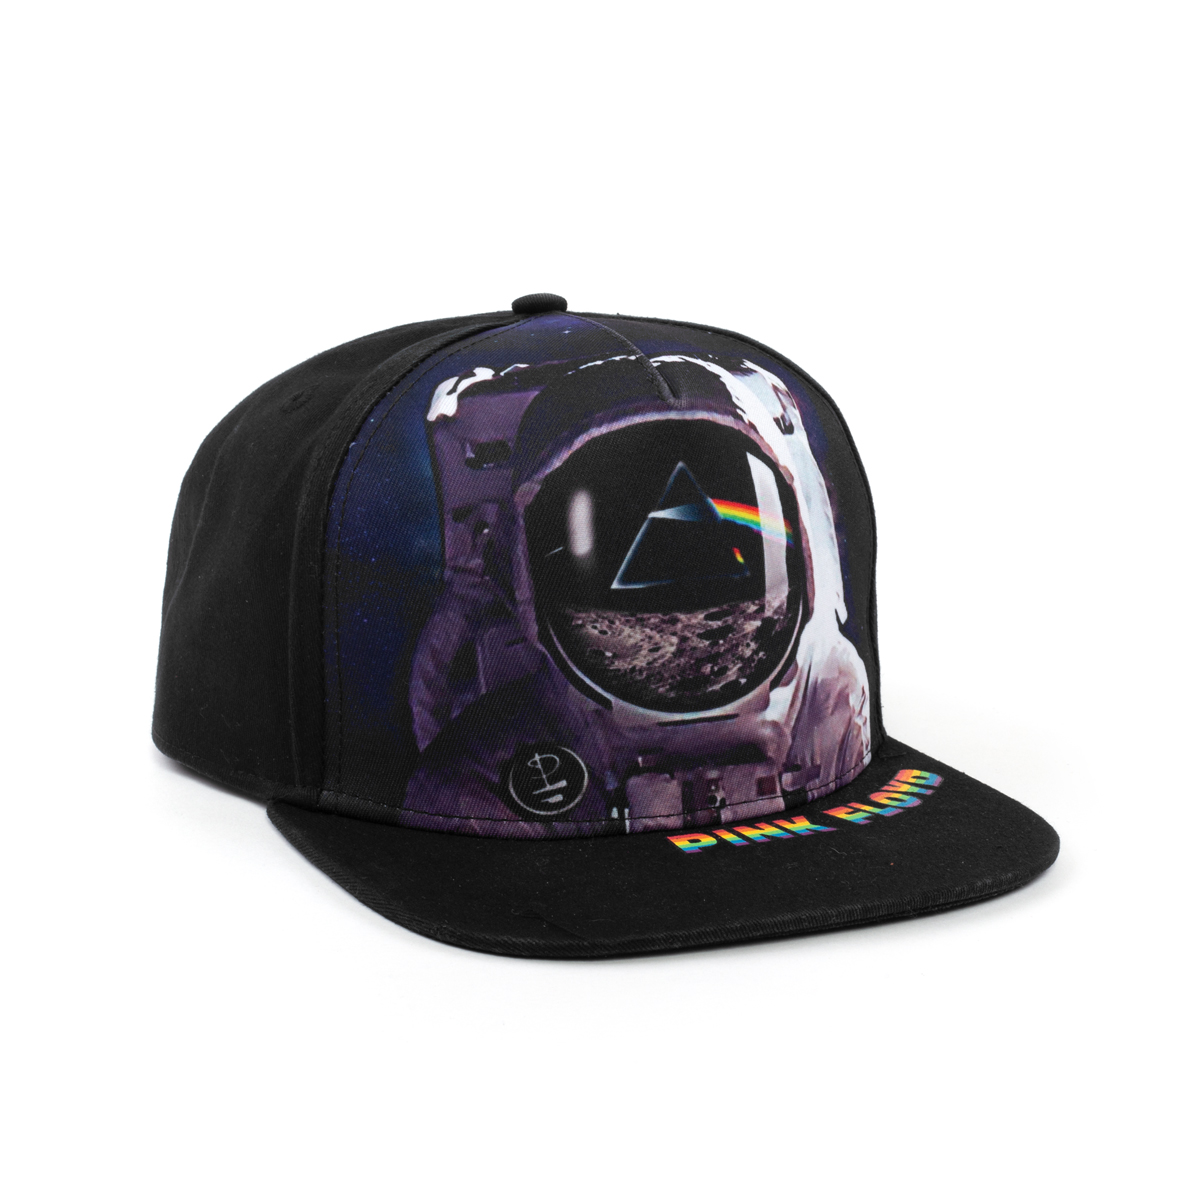 The Dark Side of the Moon Graphic Snapback Hat